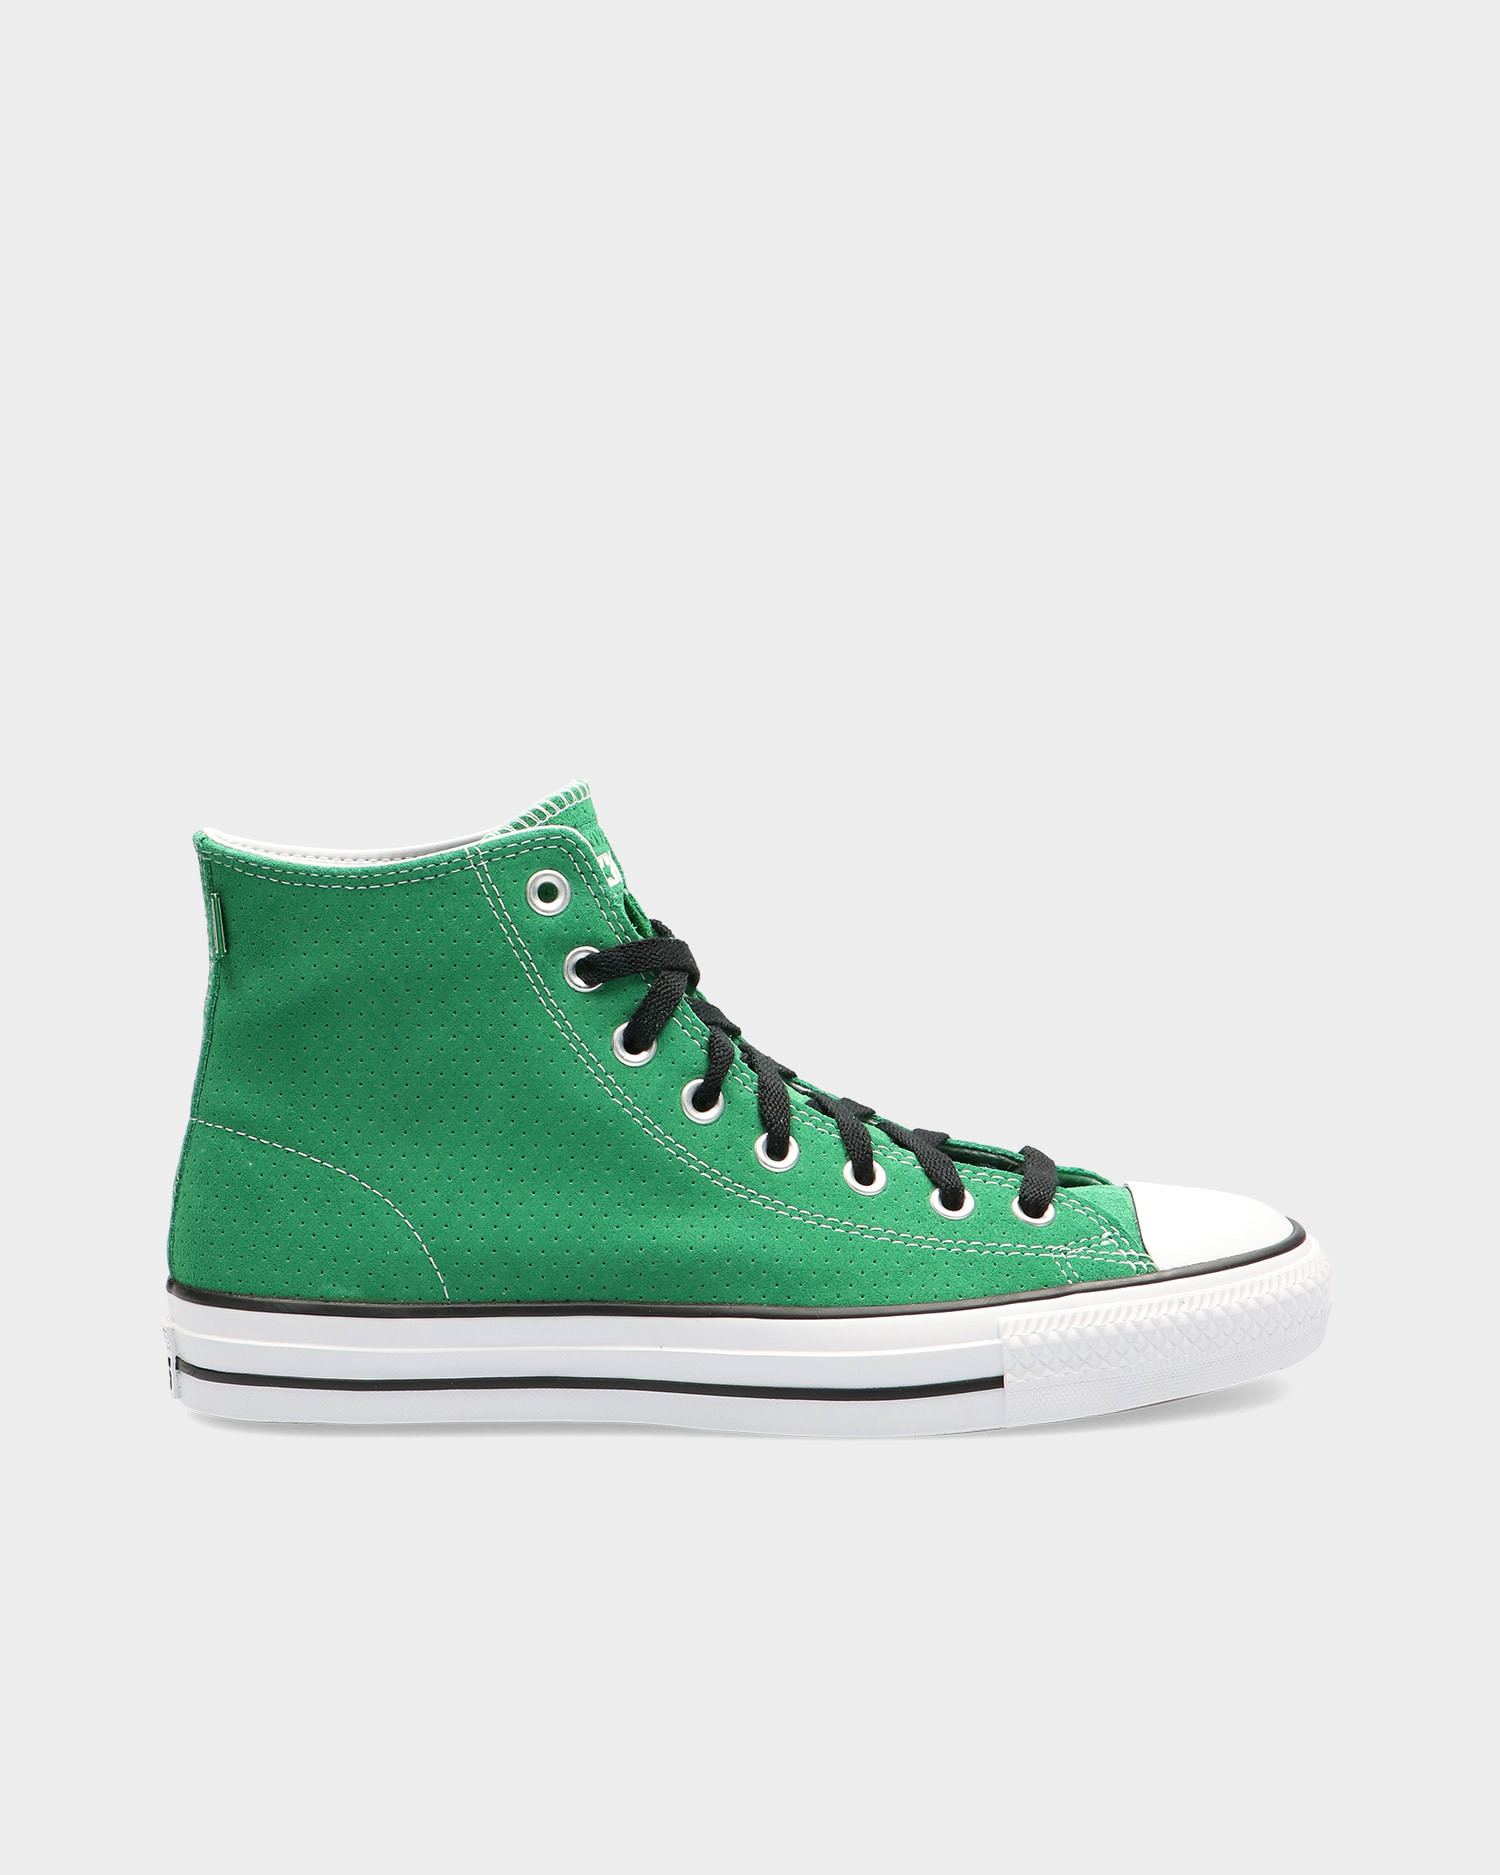 Converse Chuck Taylor All Star Pro Embossed Suede Hi Green/Black/White